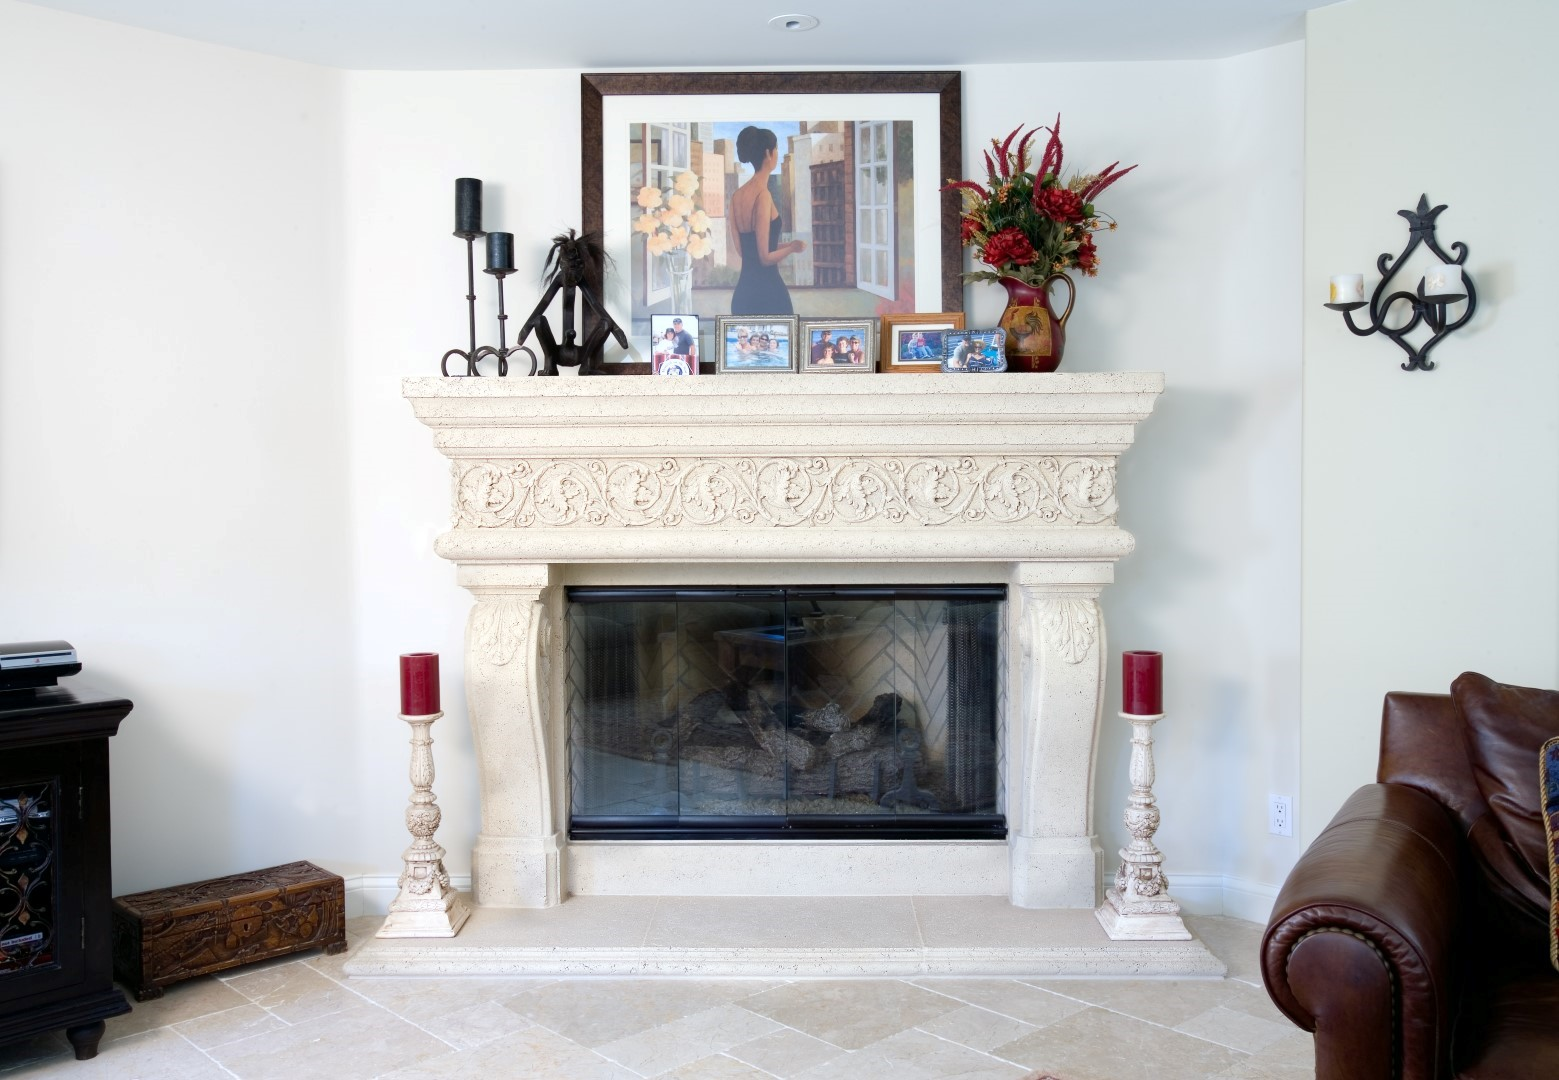 Los Angeles favorite Fireplace and mantel provider. Elegant Fireplace Mantel North Hollywood